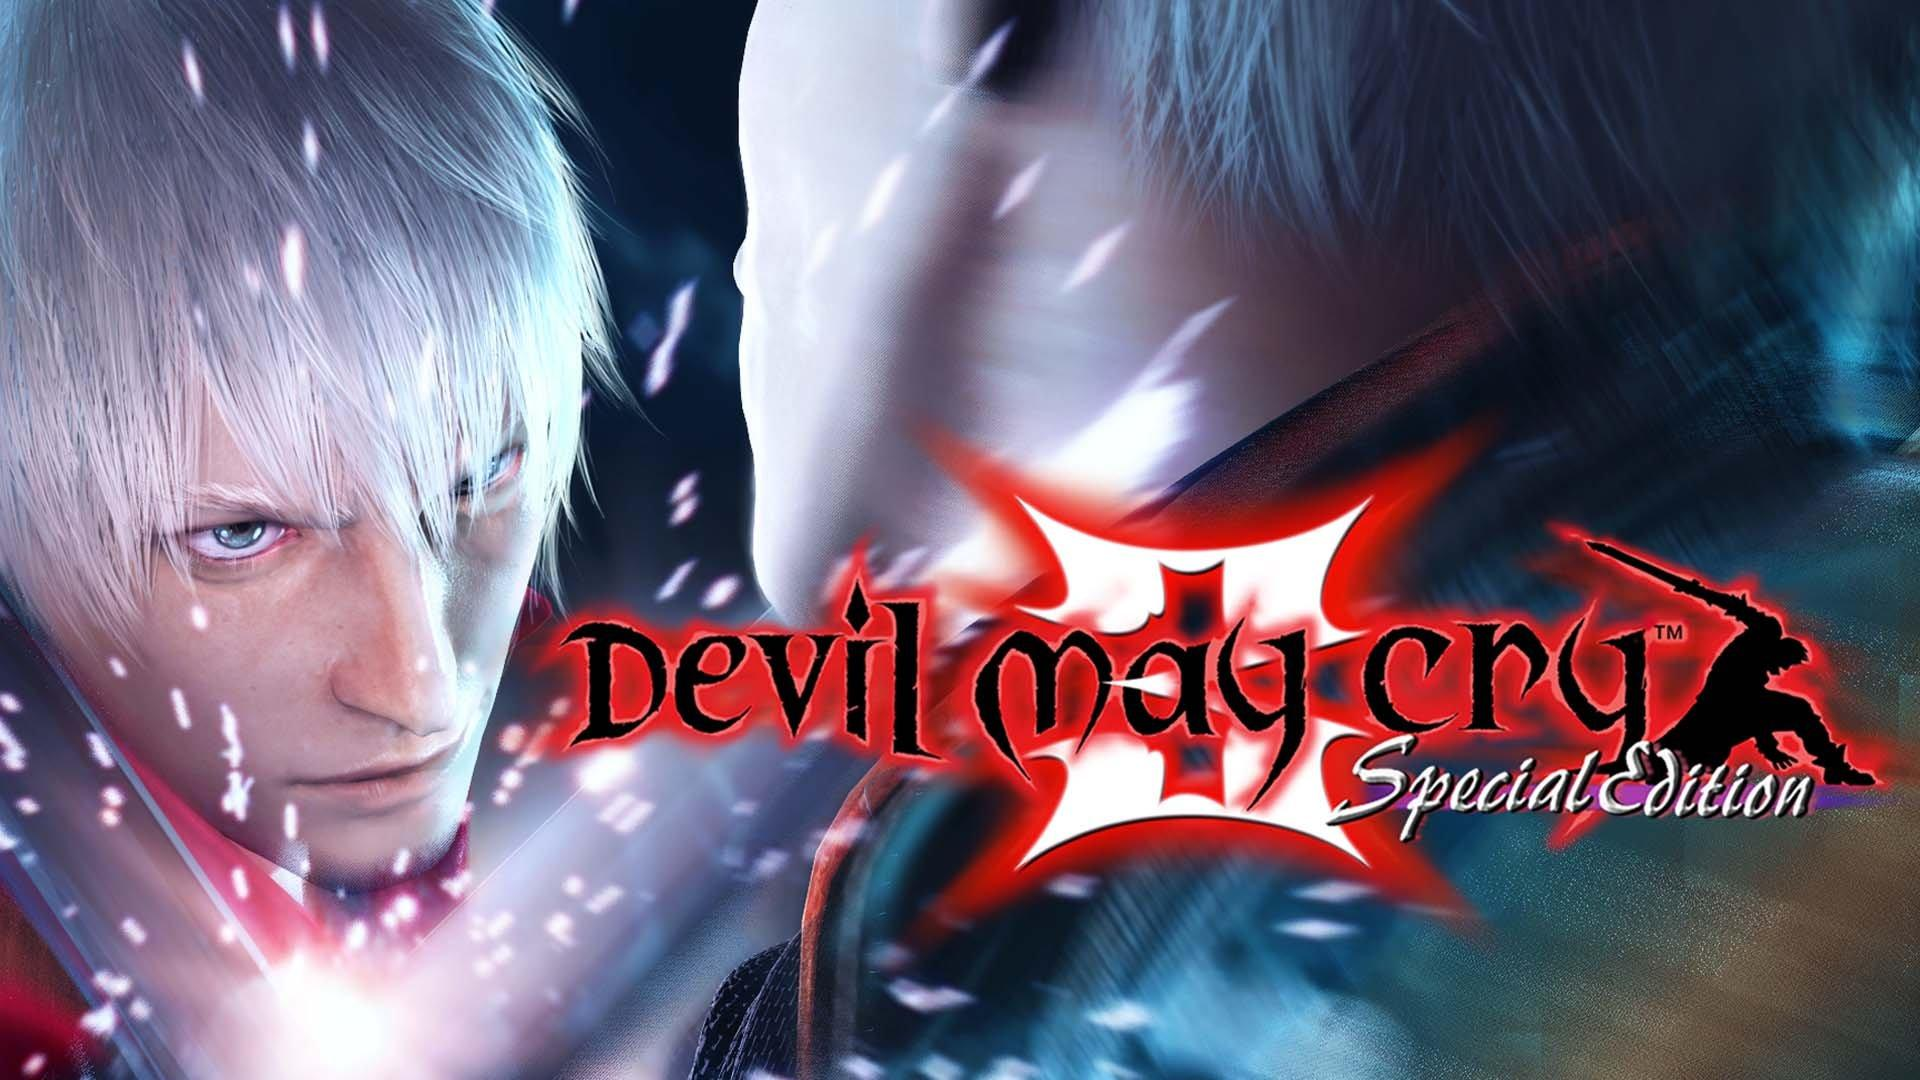 Devil May Cry 3 Special Edition Nintendo Switch Gamestop